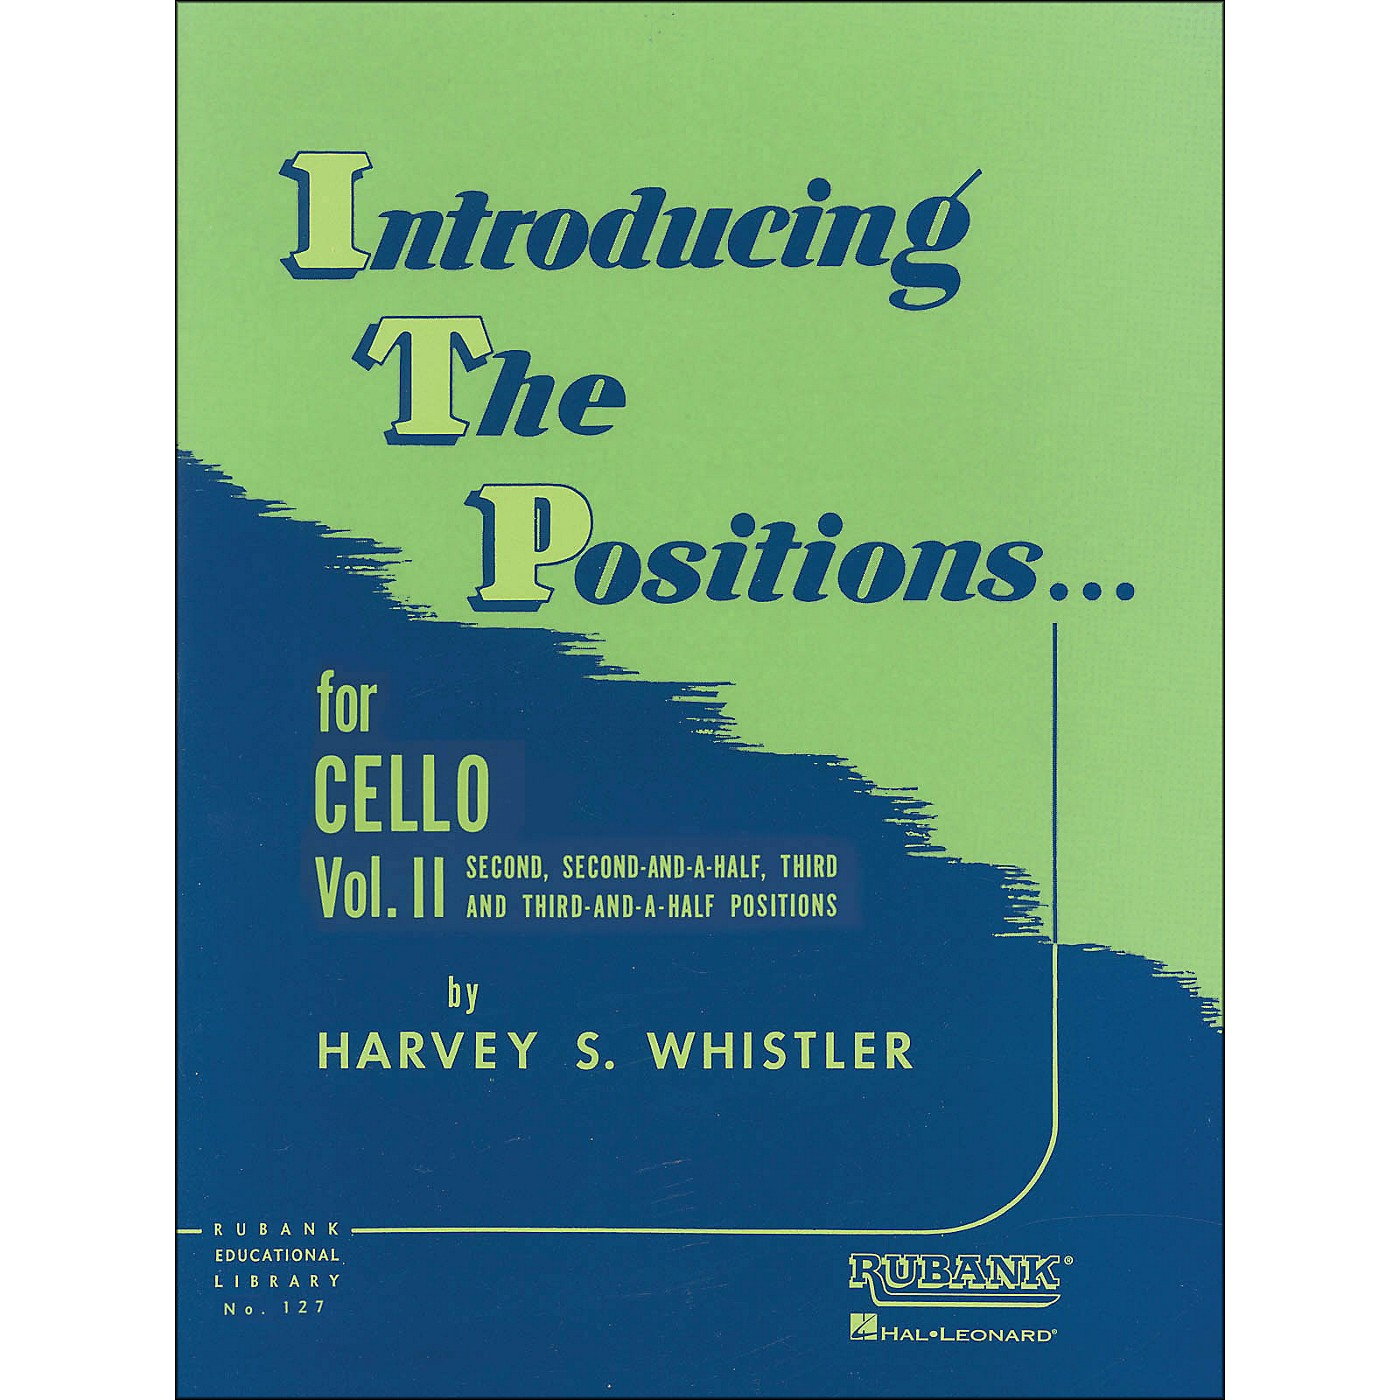 Hal Leonard Introducing The Positions for Cello Vol 2 2nd, 2 1/2, 3rd And 3 1/2 Positions thumbnail